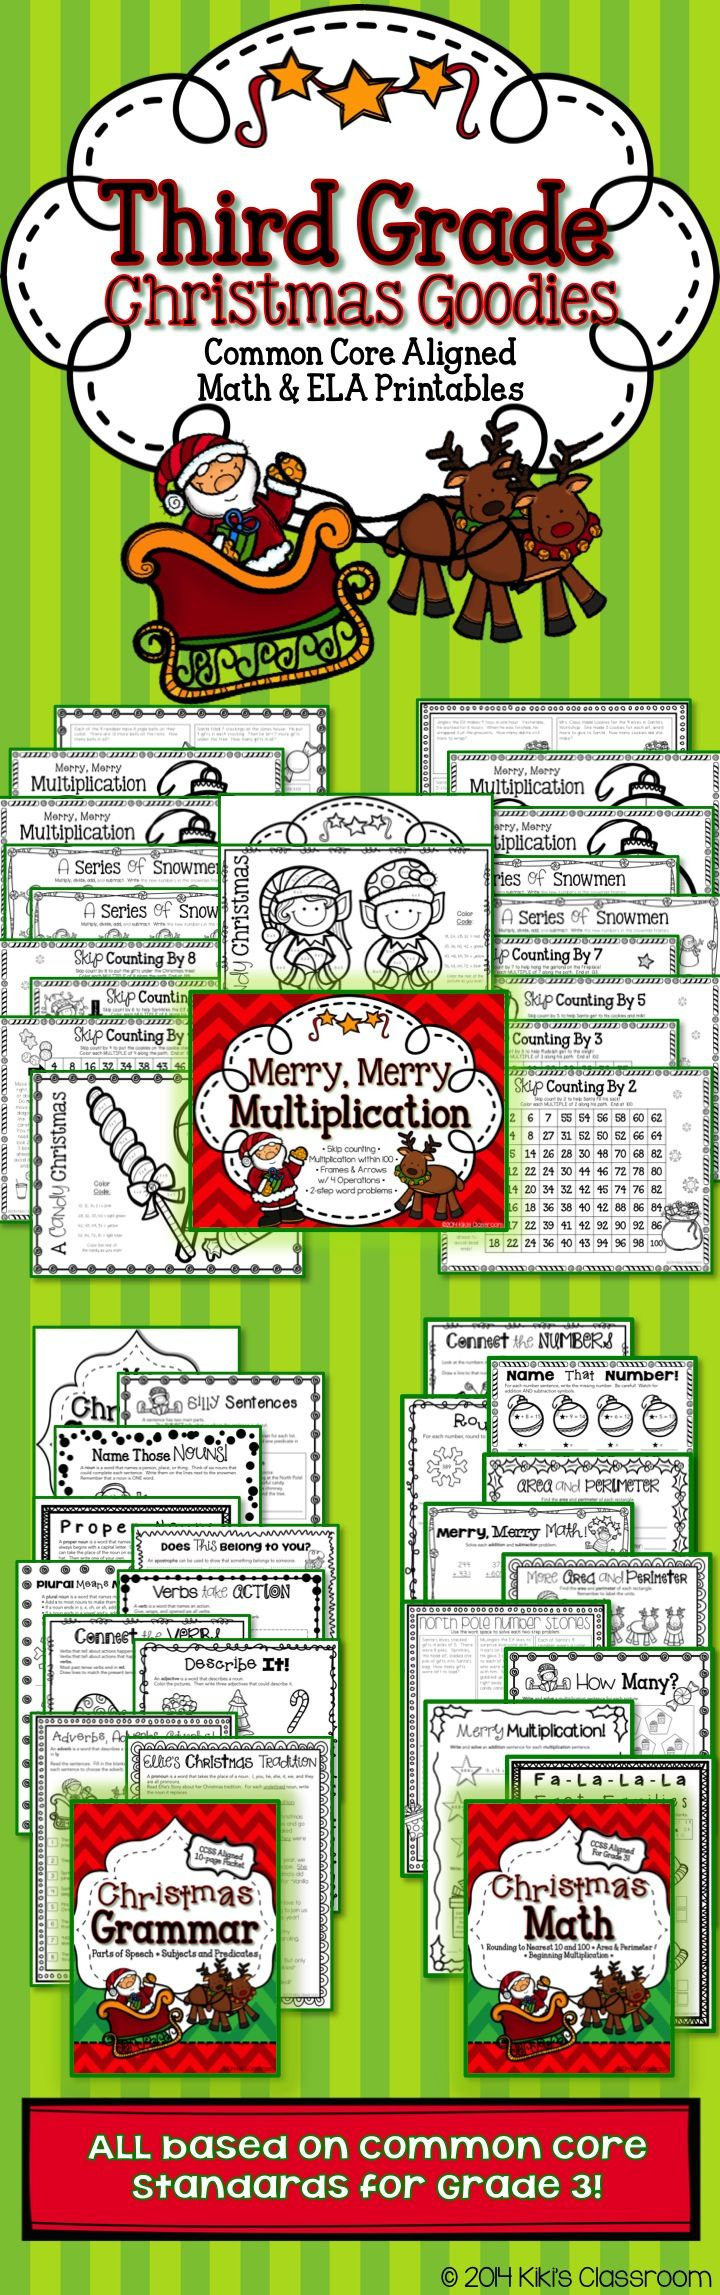 3rd grade christmas activities christmas math worksheets there s only one way to make money. Black Bedroom Furniture Sets. Home Design Ideas